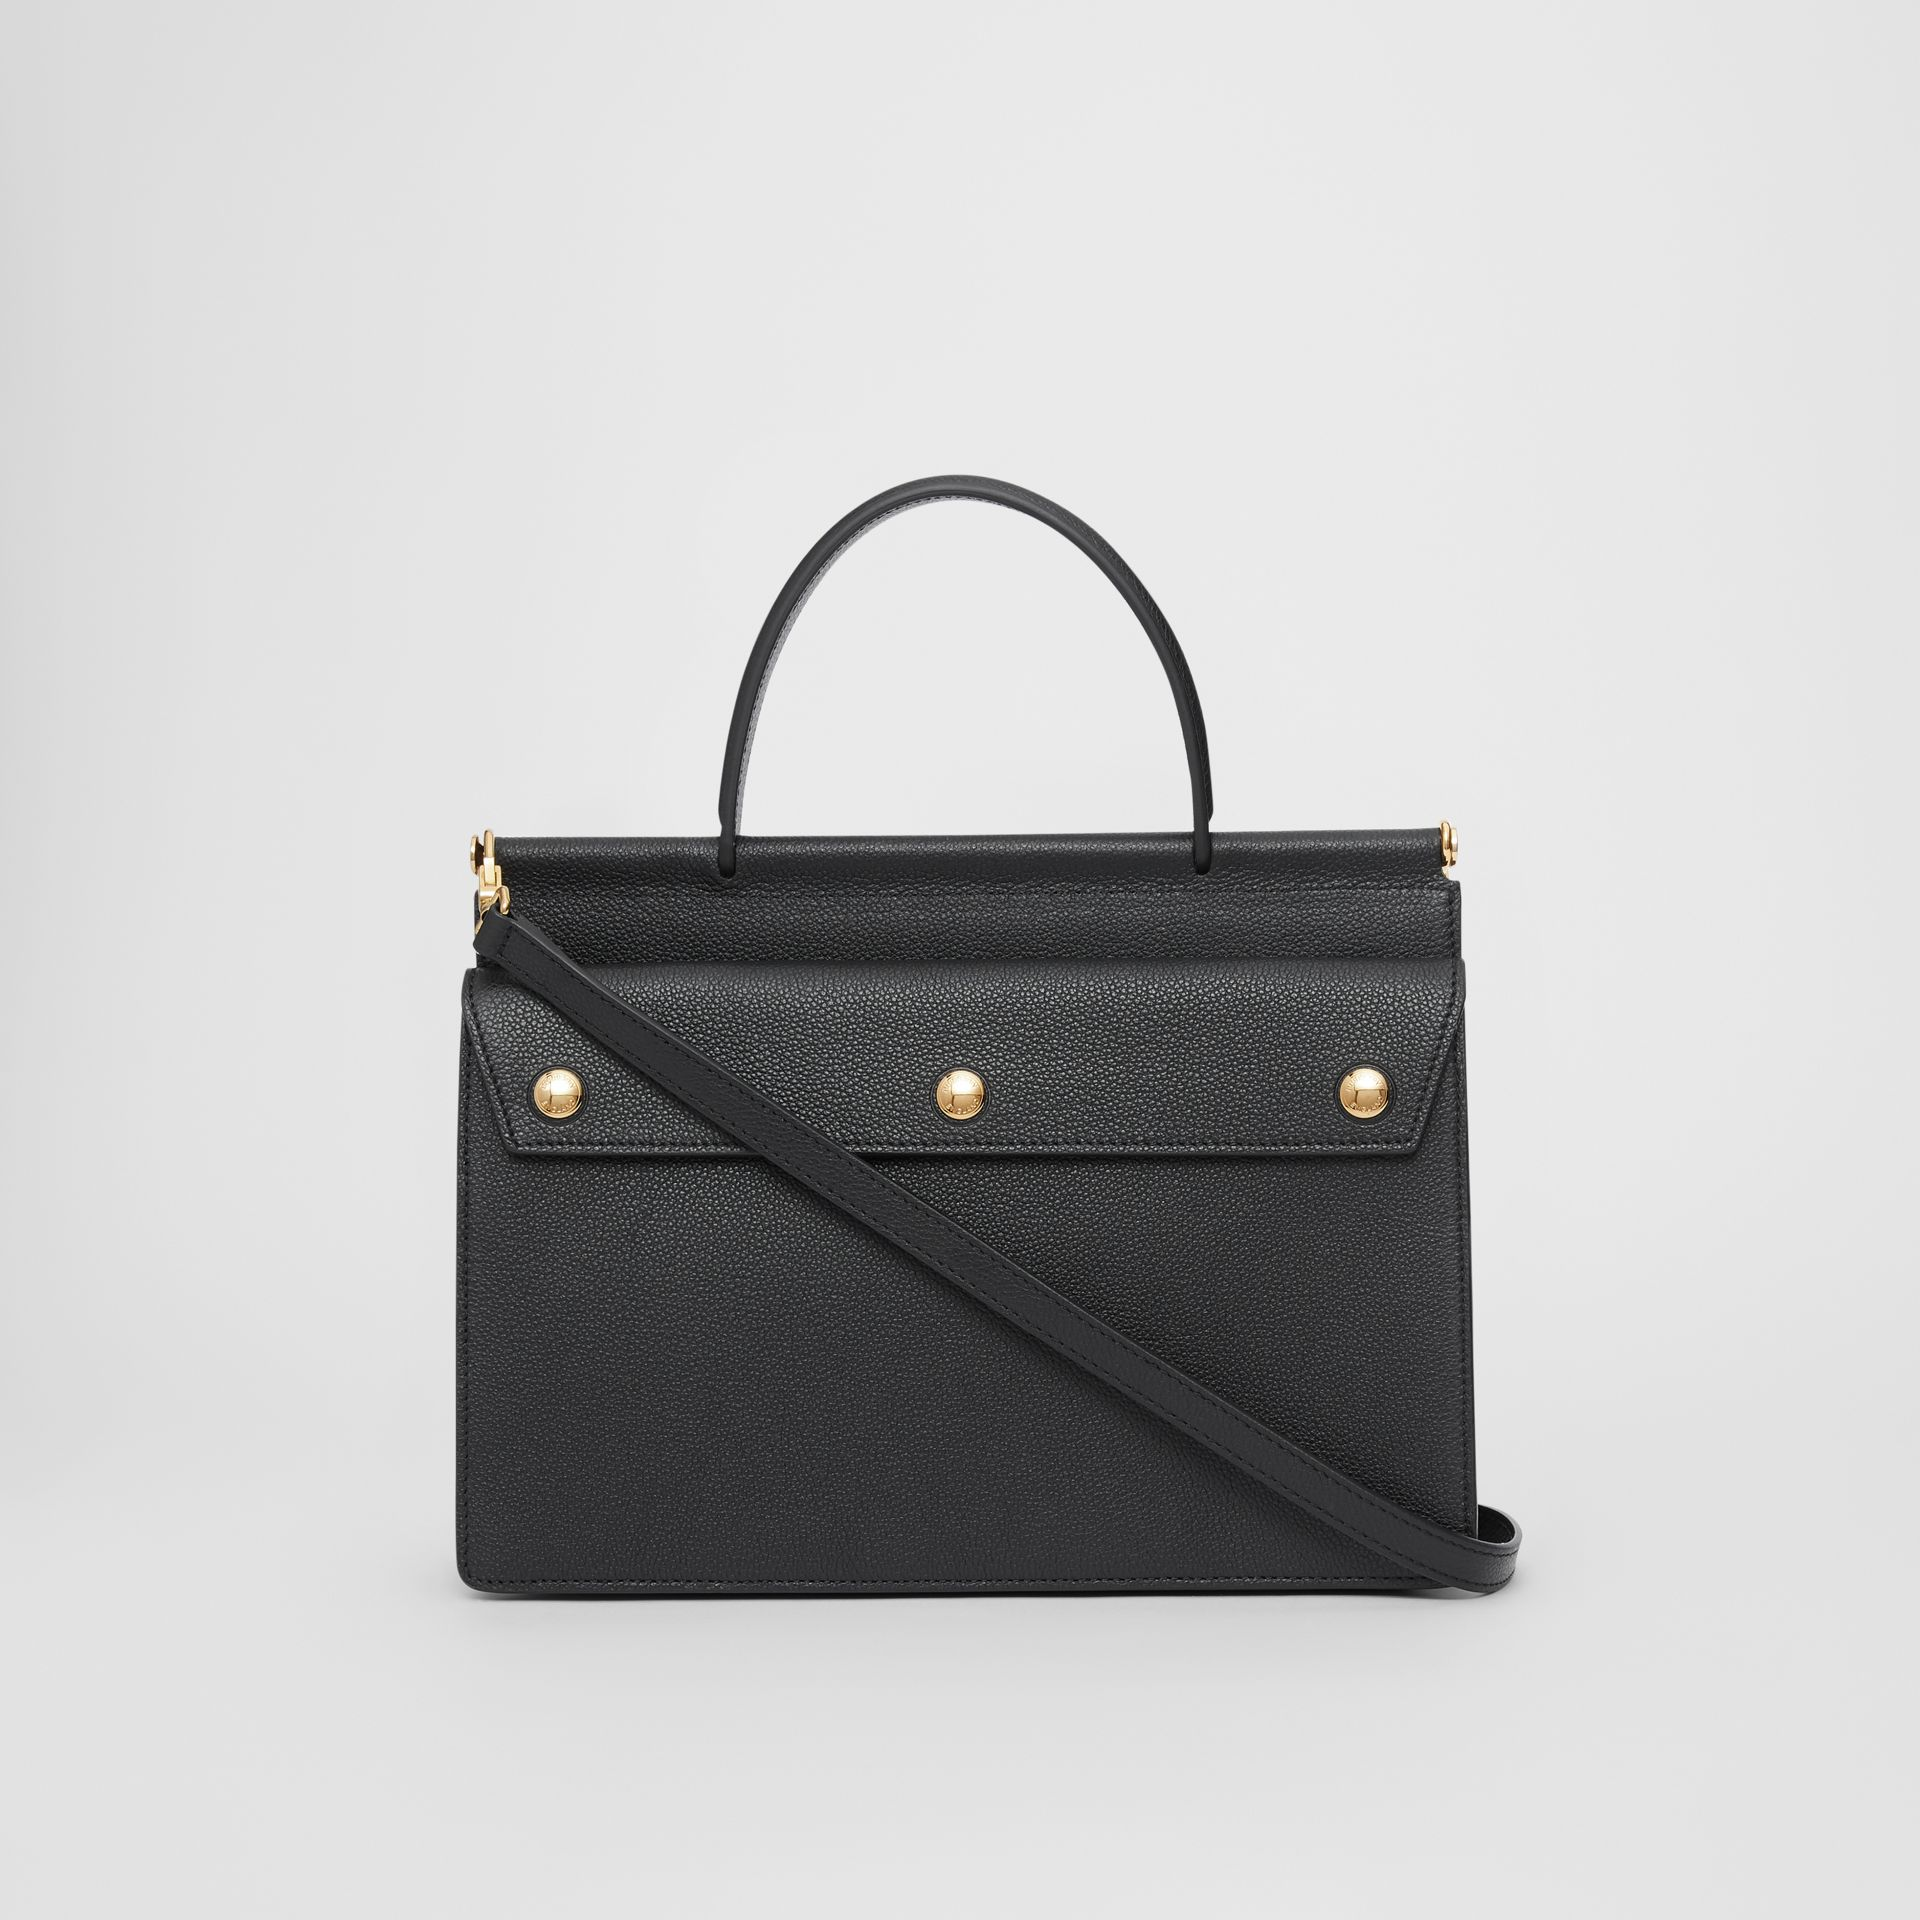 Small Leather Title Bag with Pocket Detail in Black - Women | Burberry Hong Kong S.A.R - gallery image 7